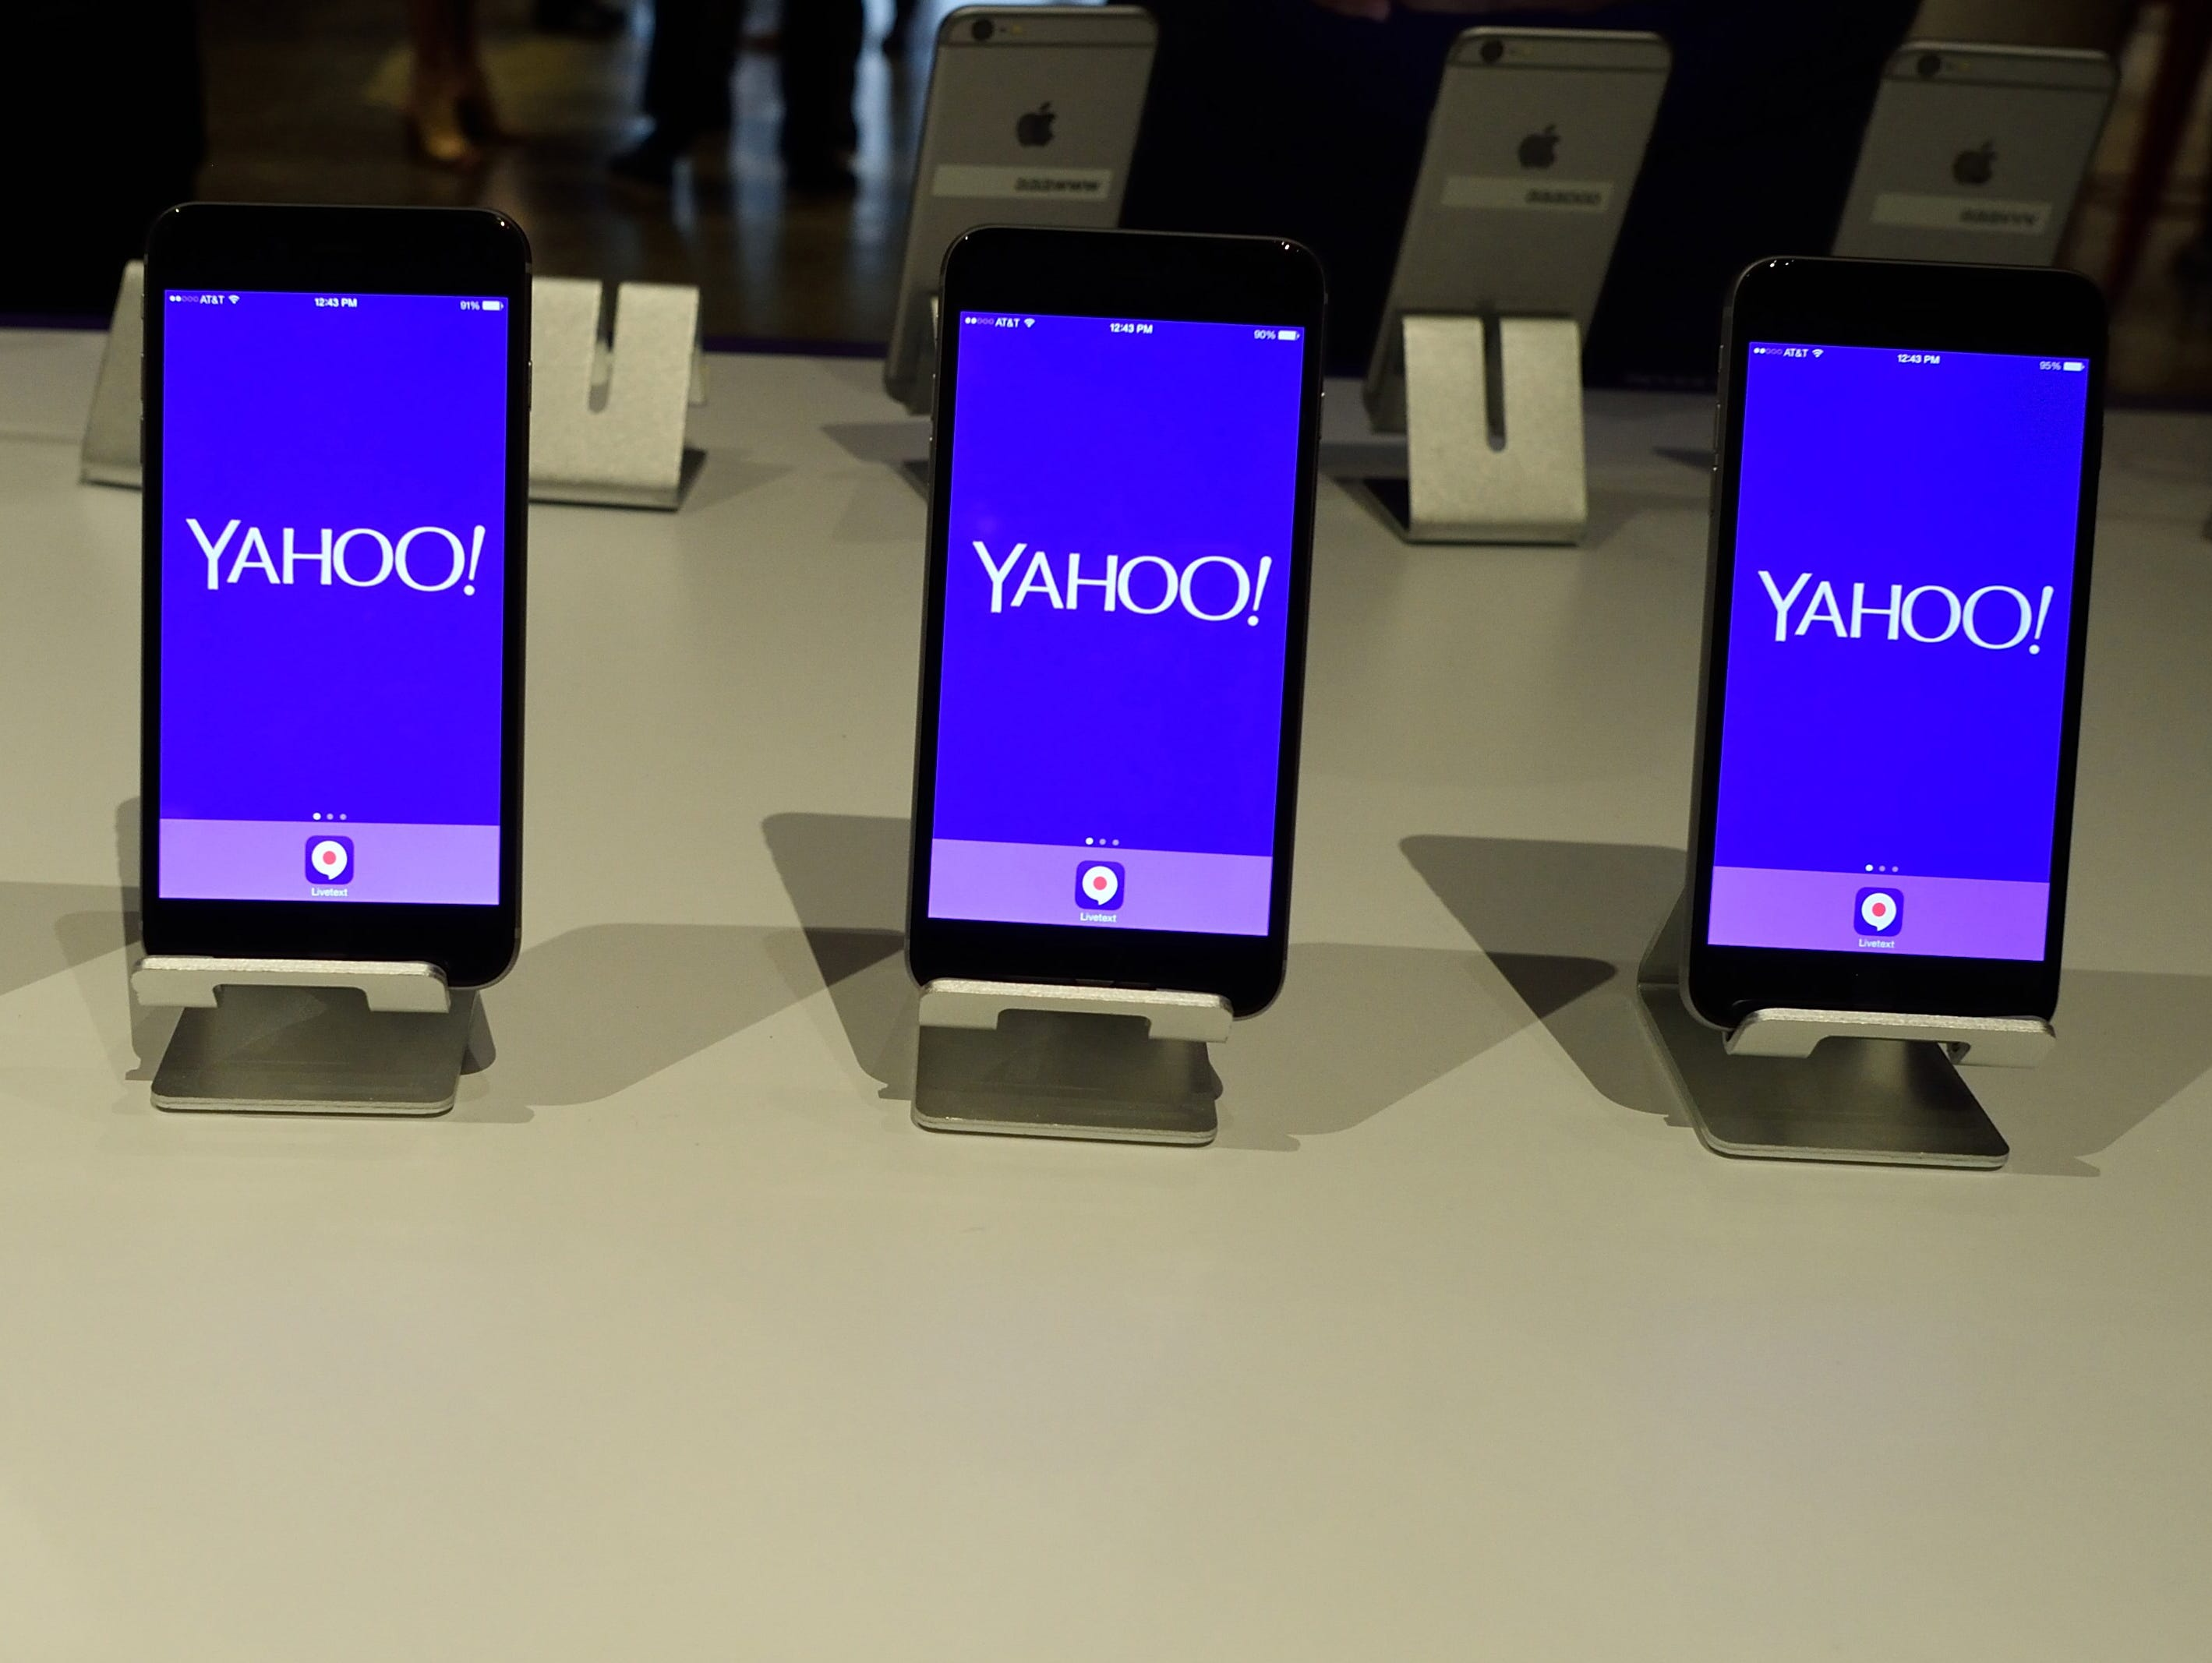 Phones set up to demonstrate Livetext are seen during a Yahoo news conference July 29, 2015 in New York.